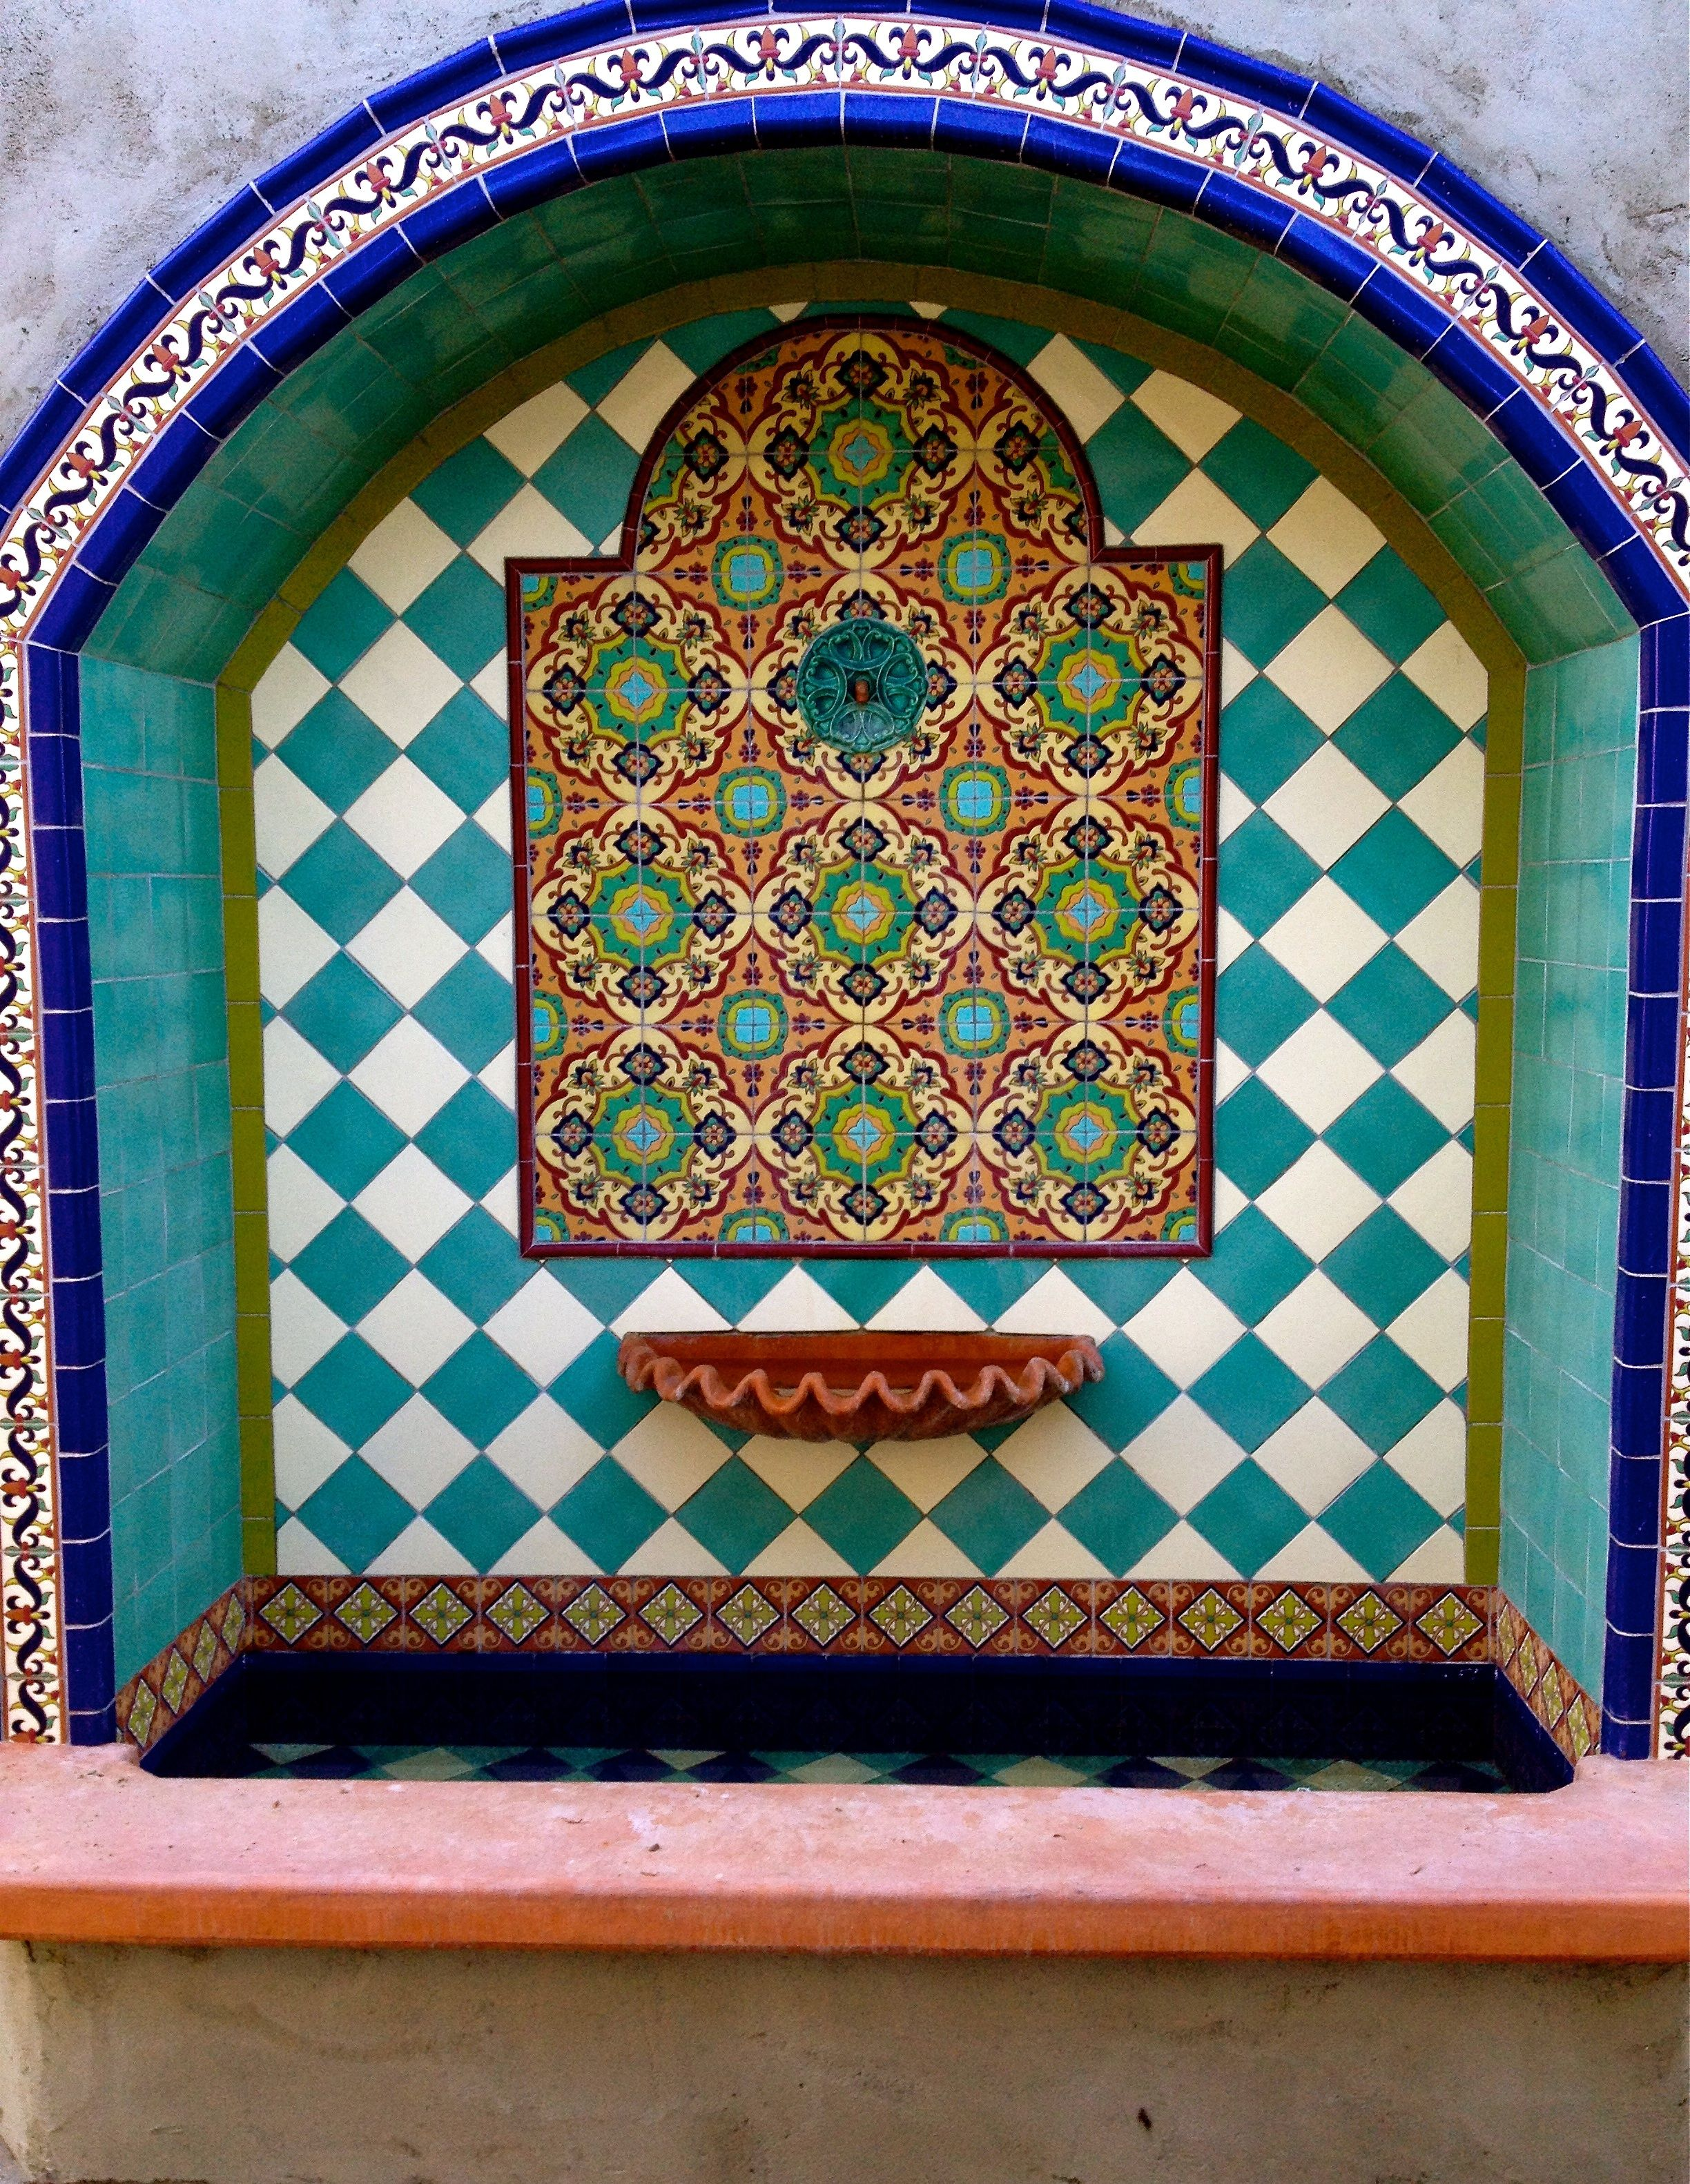 Hand painted ceramic tile fountain project tiles in fountains handpainted ceramic old california mission tile collection mediterranean patio san diego talavera ceramic tile studio dailygadgetfo Image collections